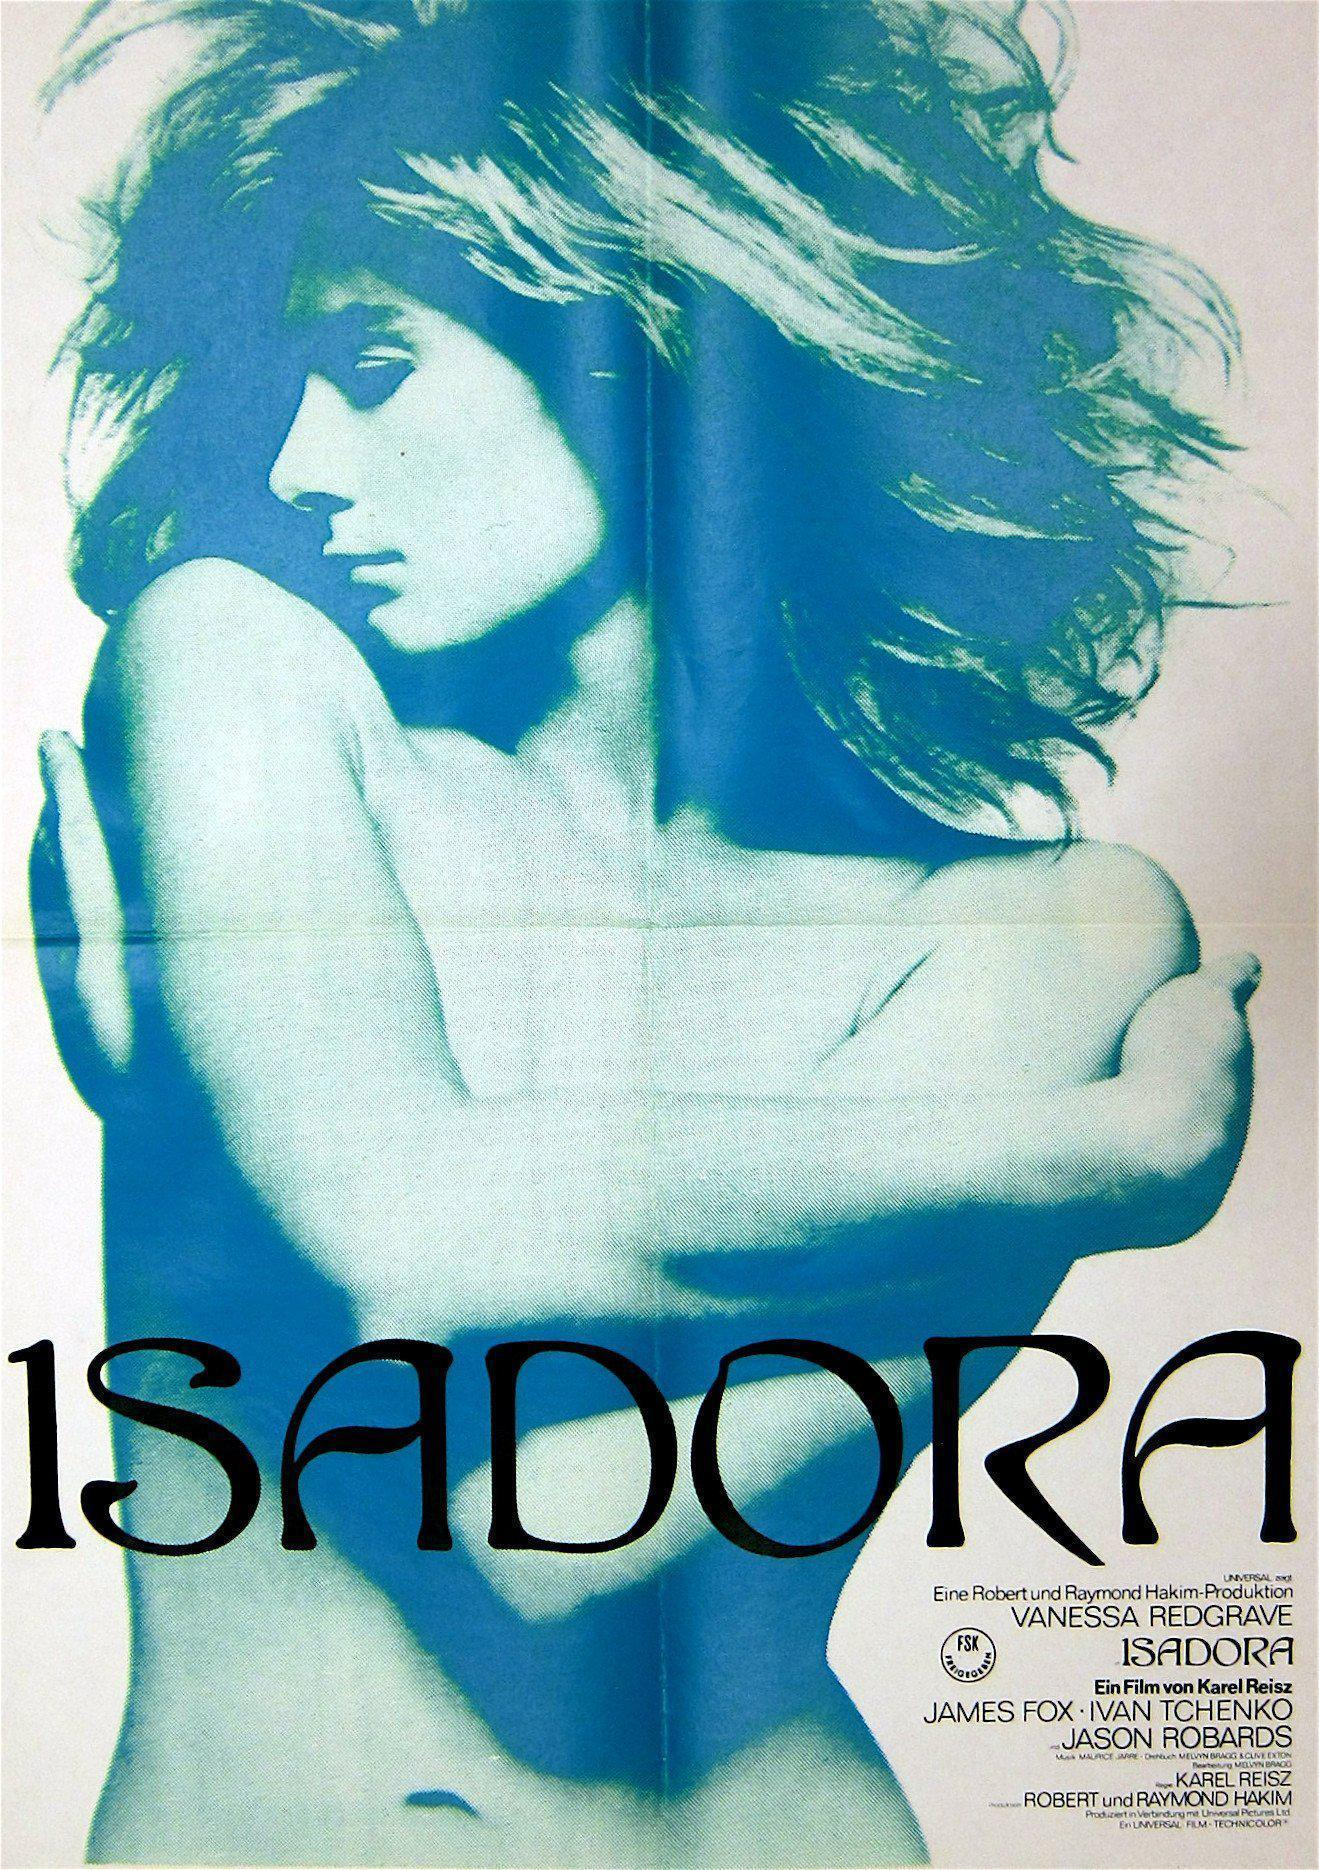 Isadora 16x23 Original Vintage Movie Poster